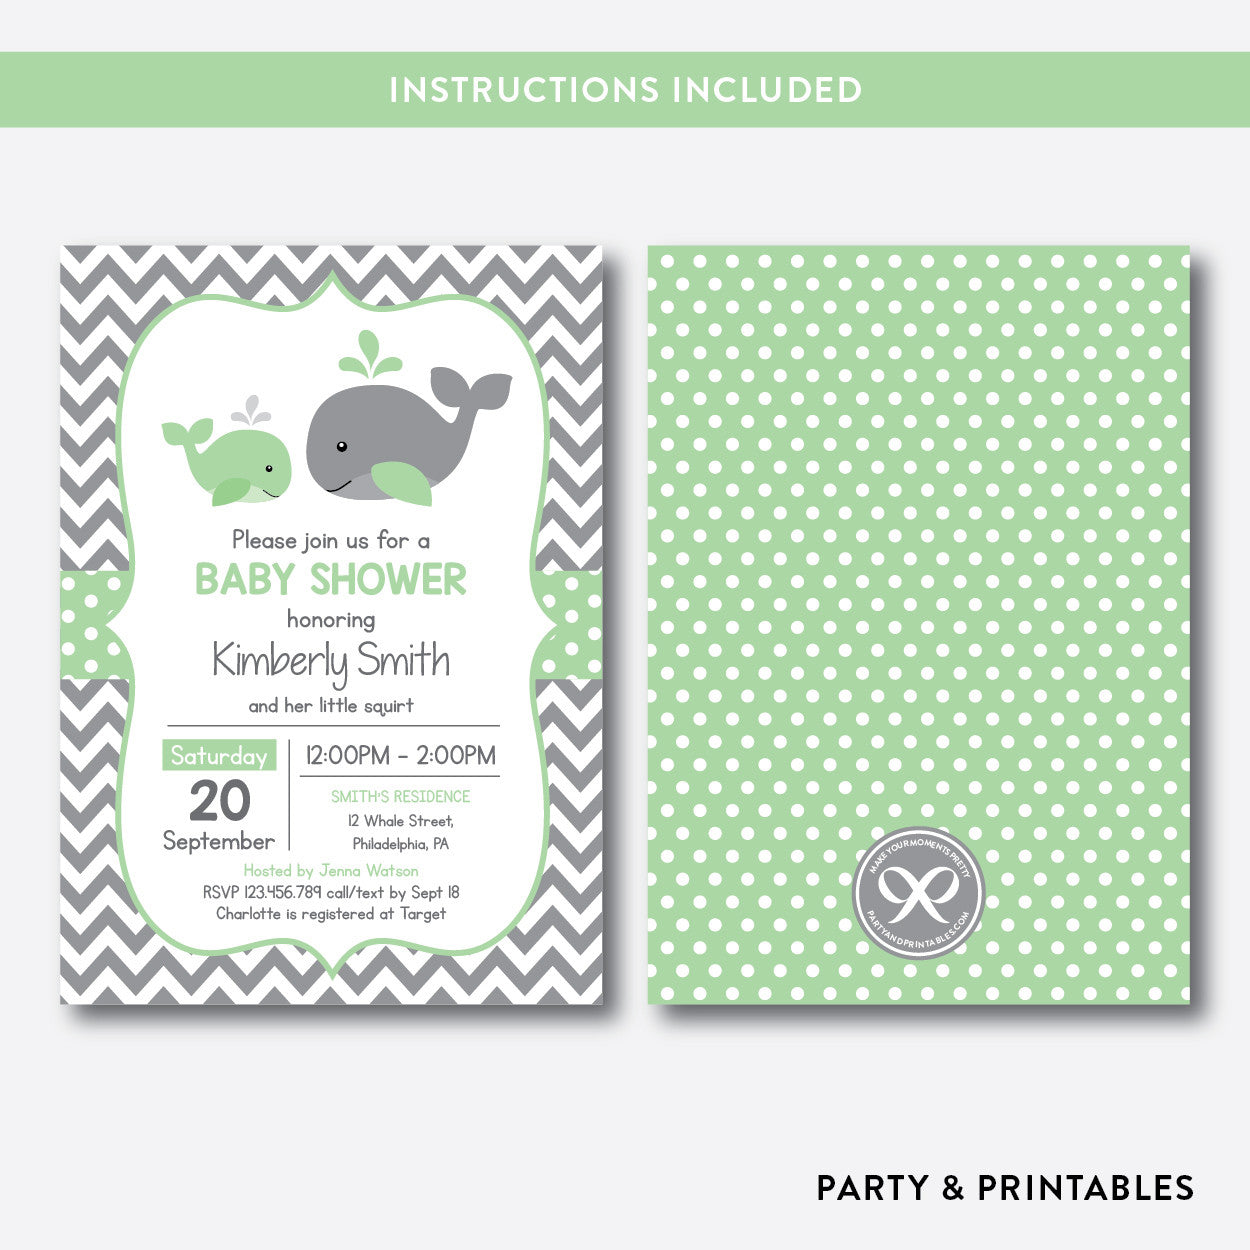 Whale Baby Shower Invitation / Editable / Instant Download (SBS.56), invitation - Party and Printables